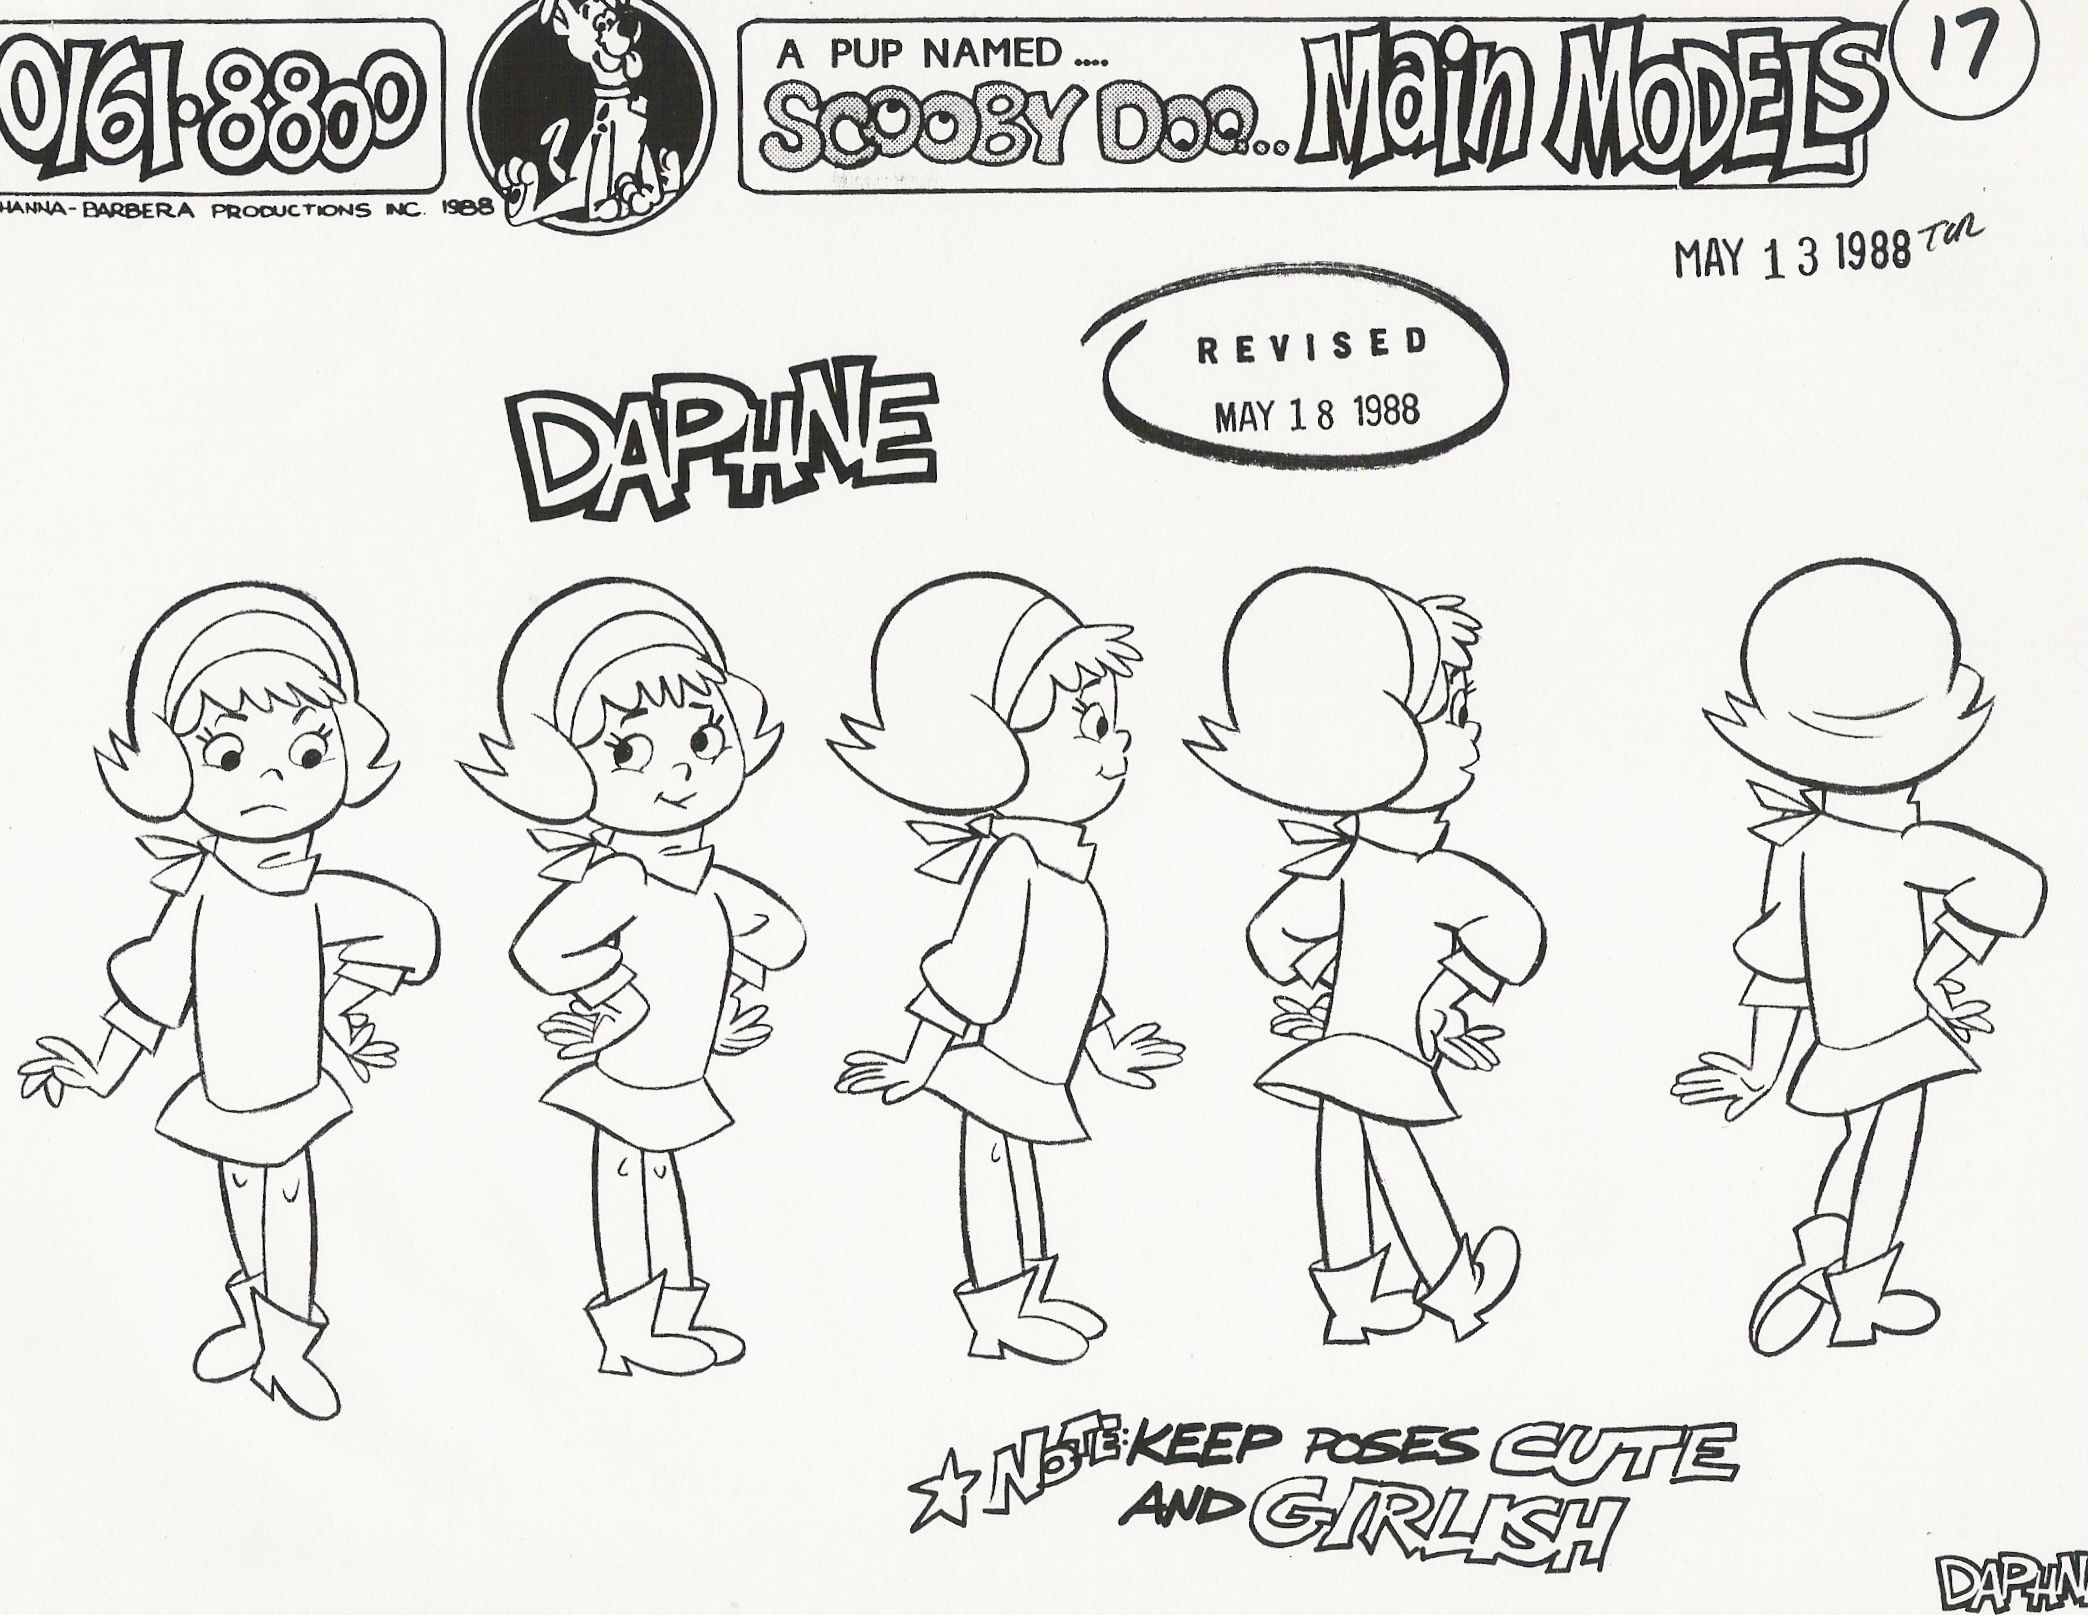 high quality pup named scooby doo model sheets scooby doo fan